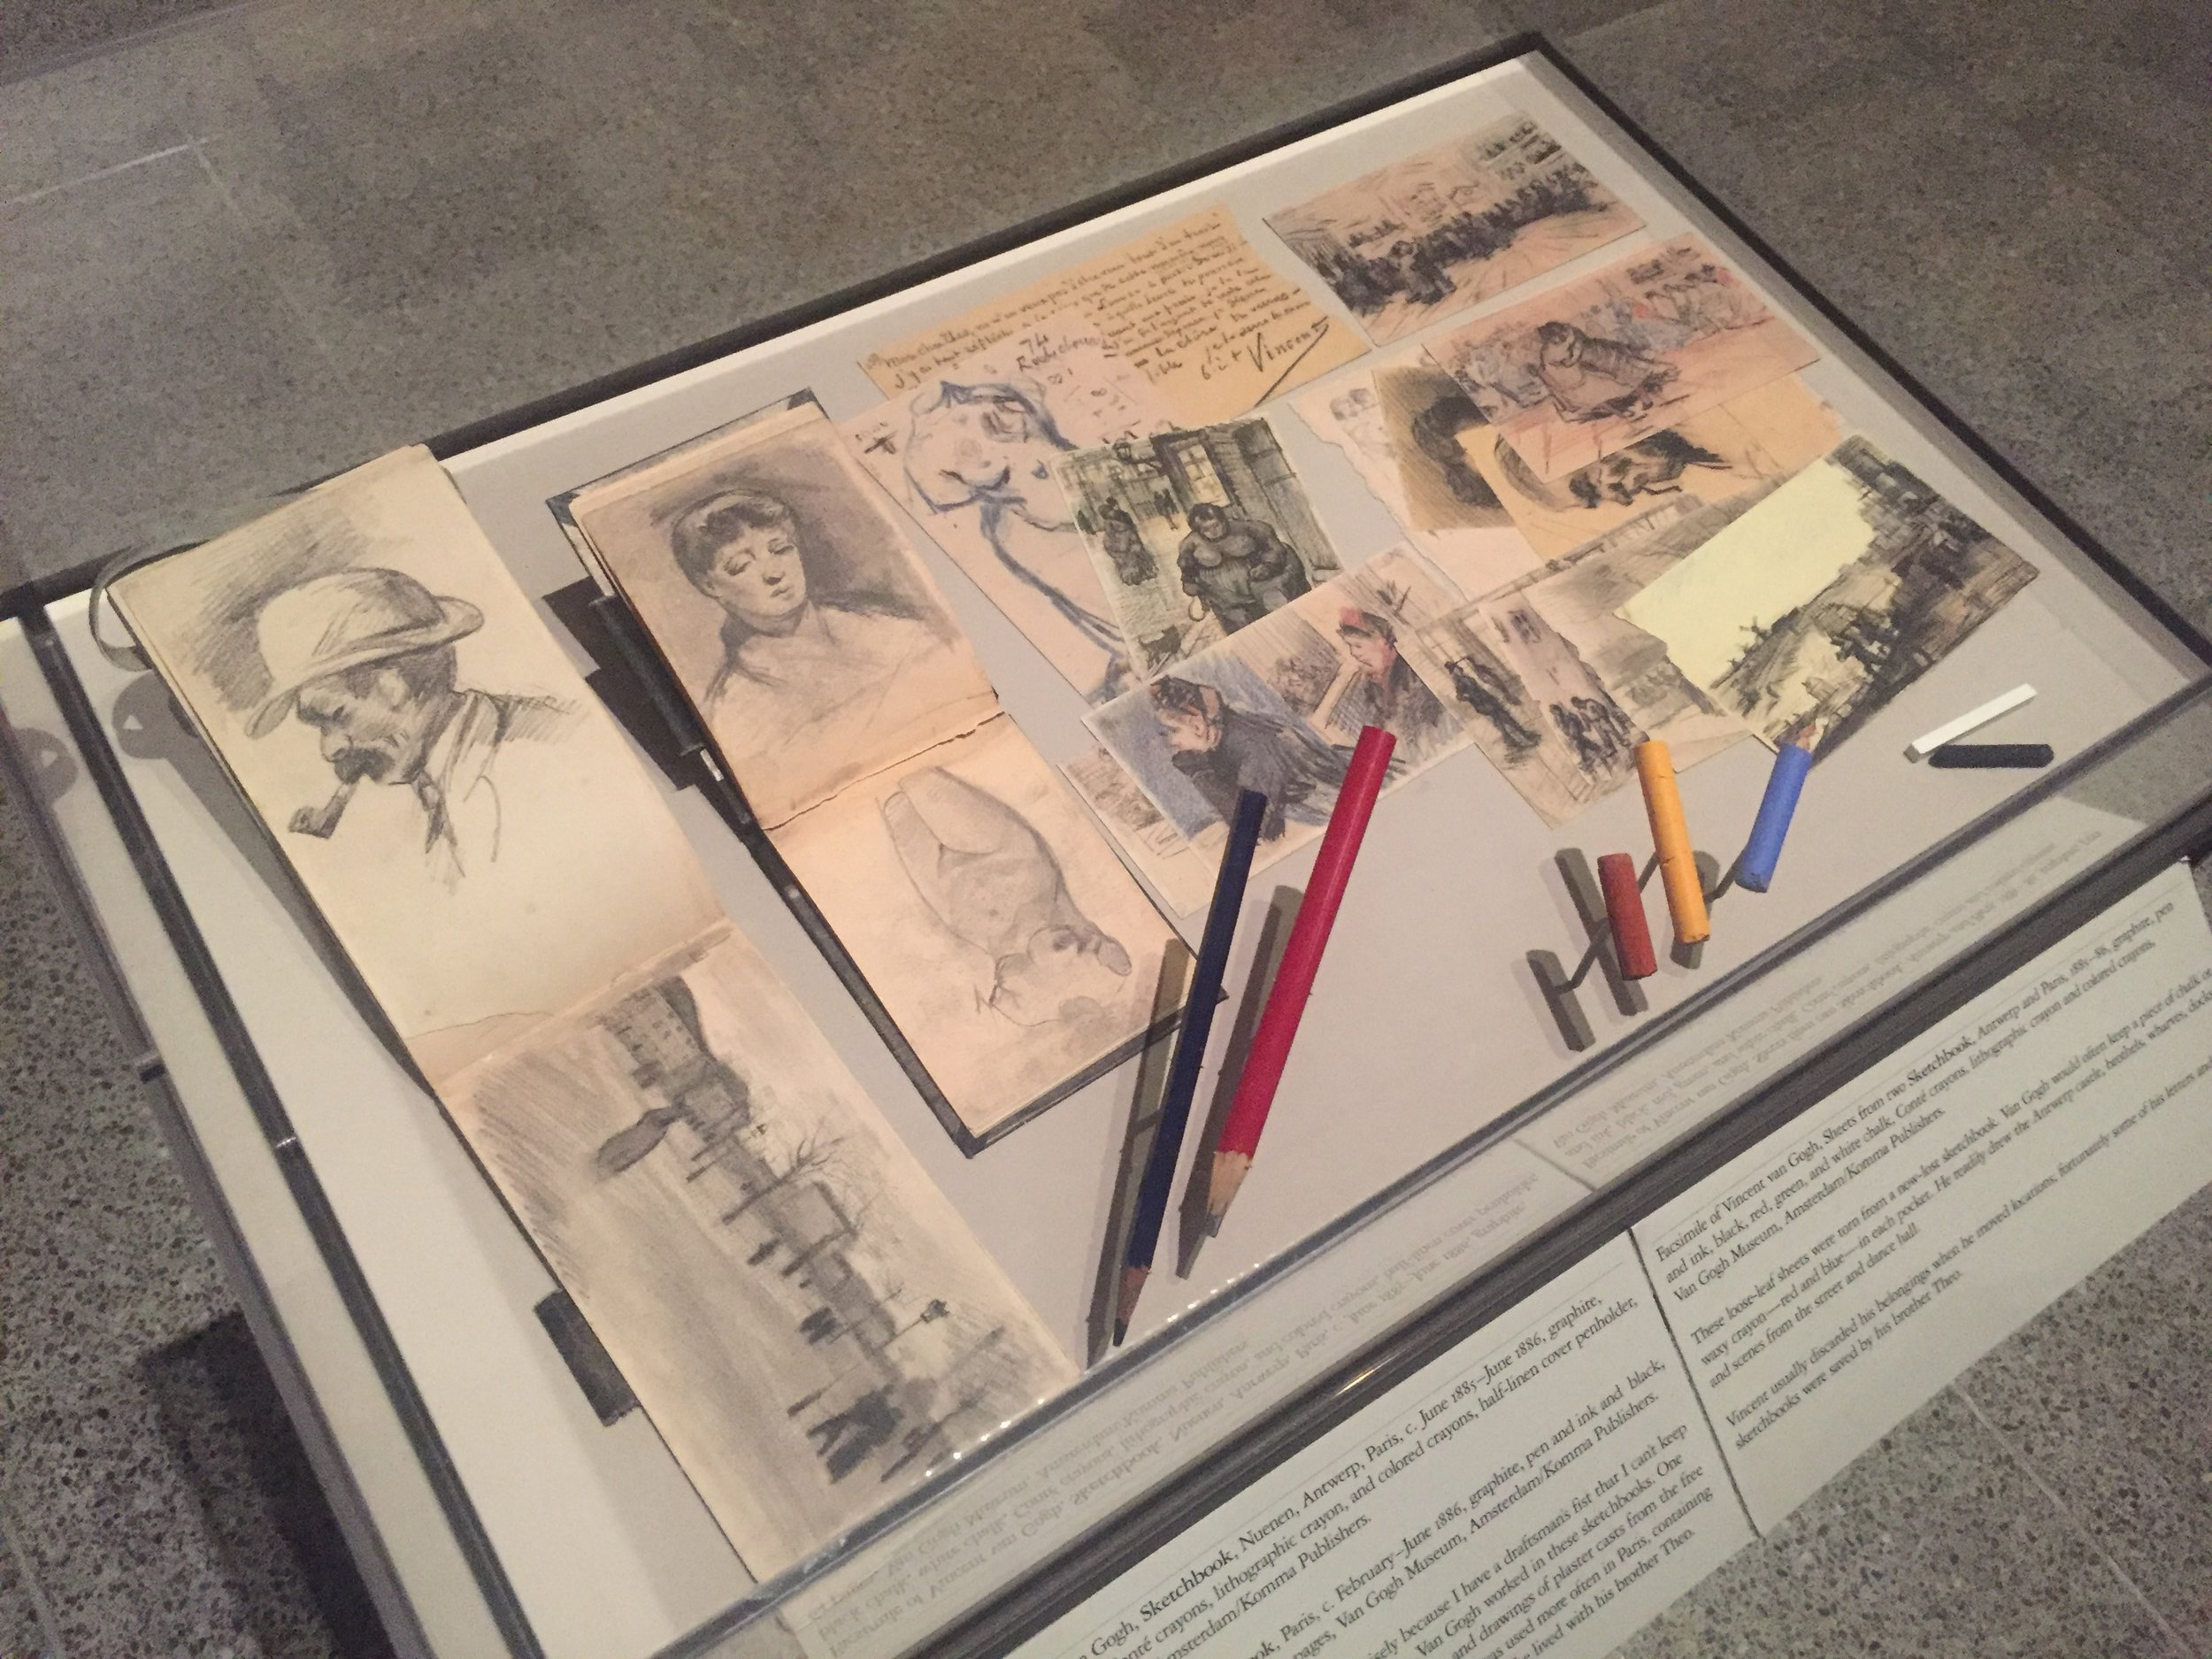 facsimile of vincent van gogh sketch books.JPG